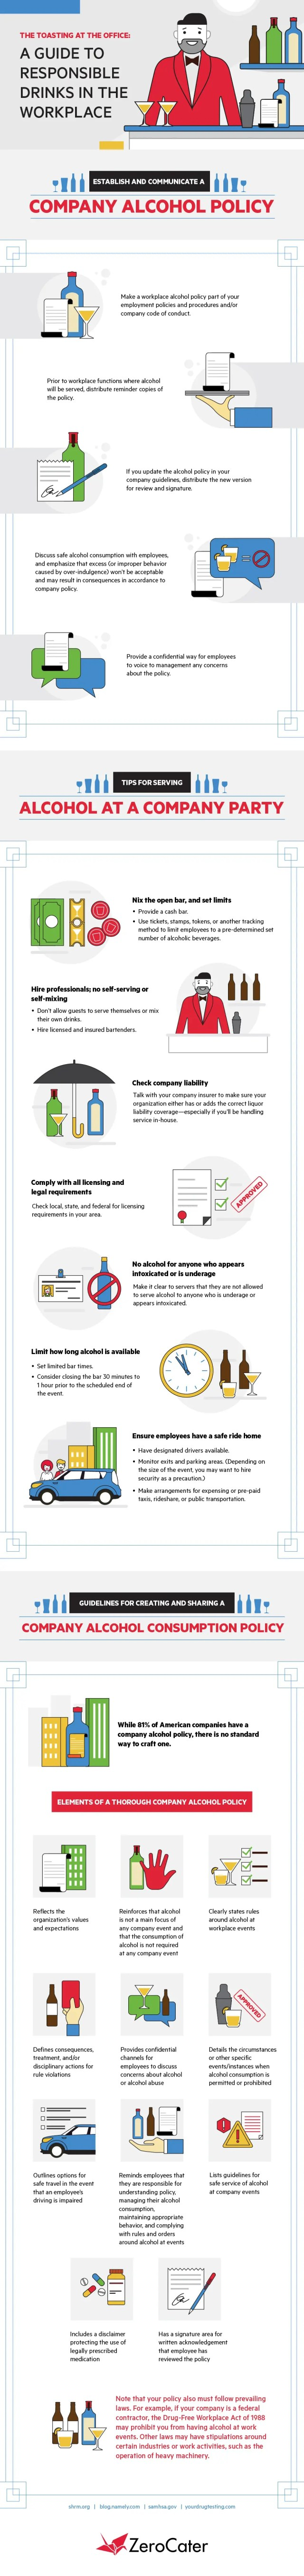 Toasting At The Office Infographic